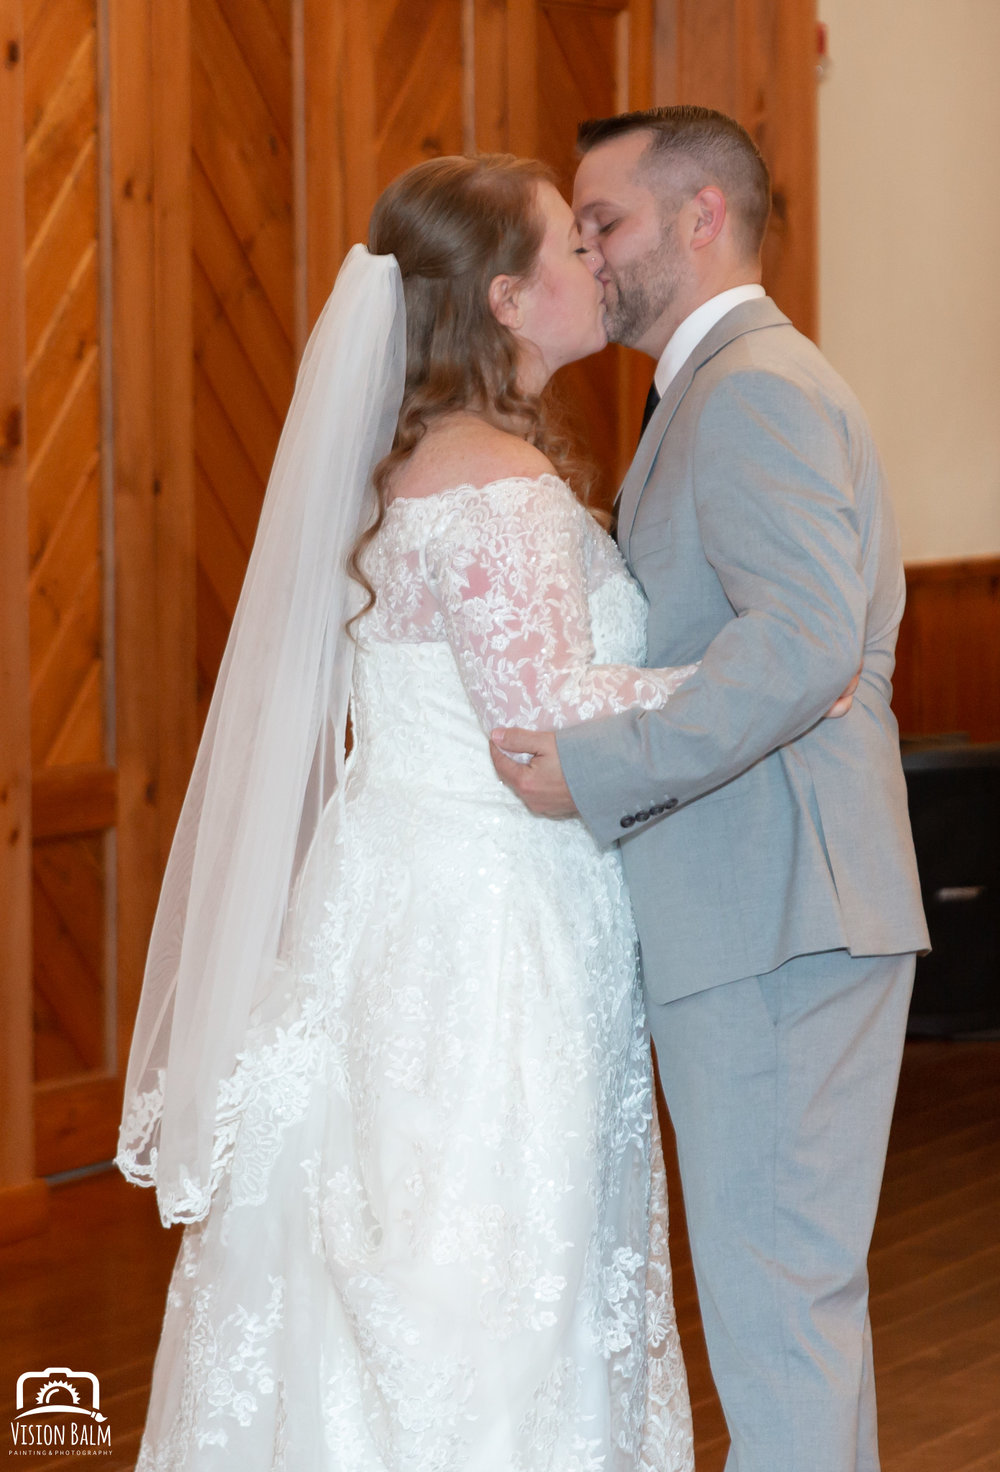 Wedding photo of bride and groom kissing in the venue of Zuka's Hilltop Barn by Vision Balm in Charleston, SC.